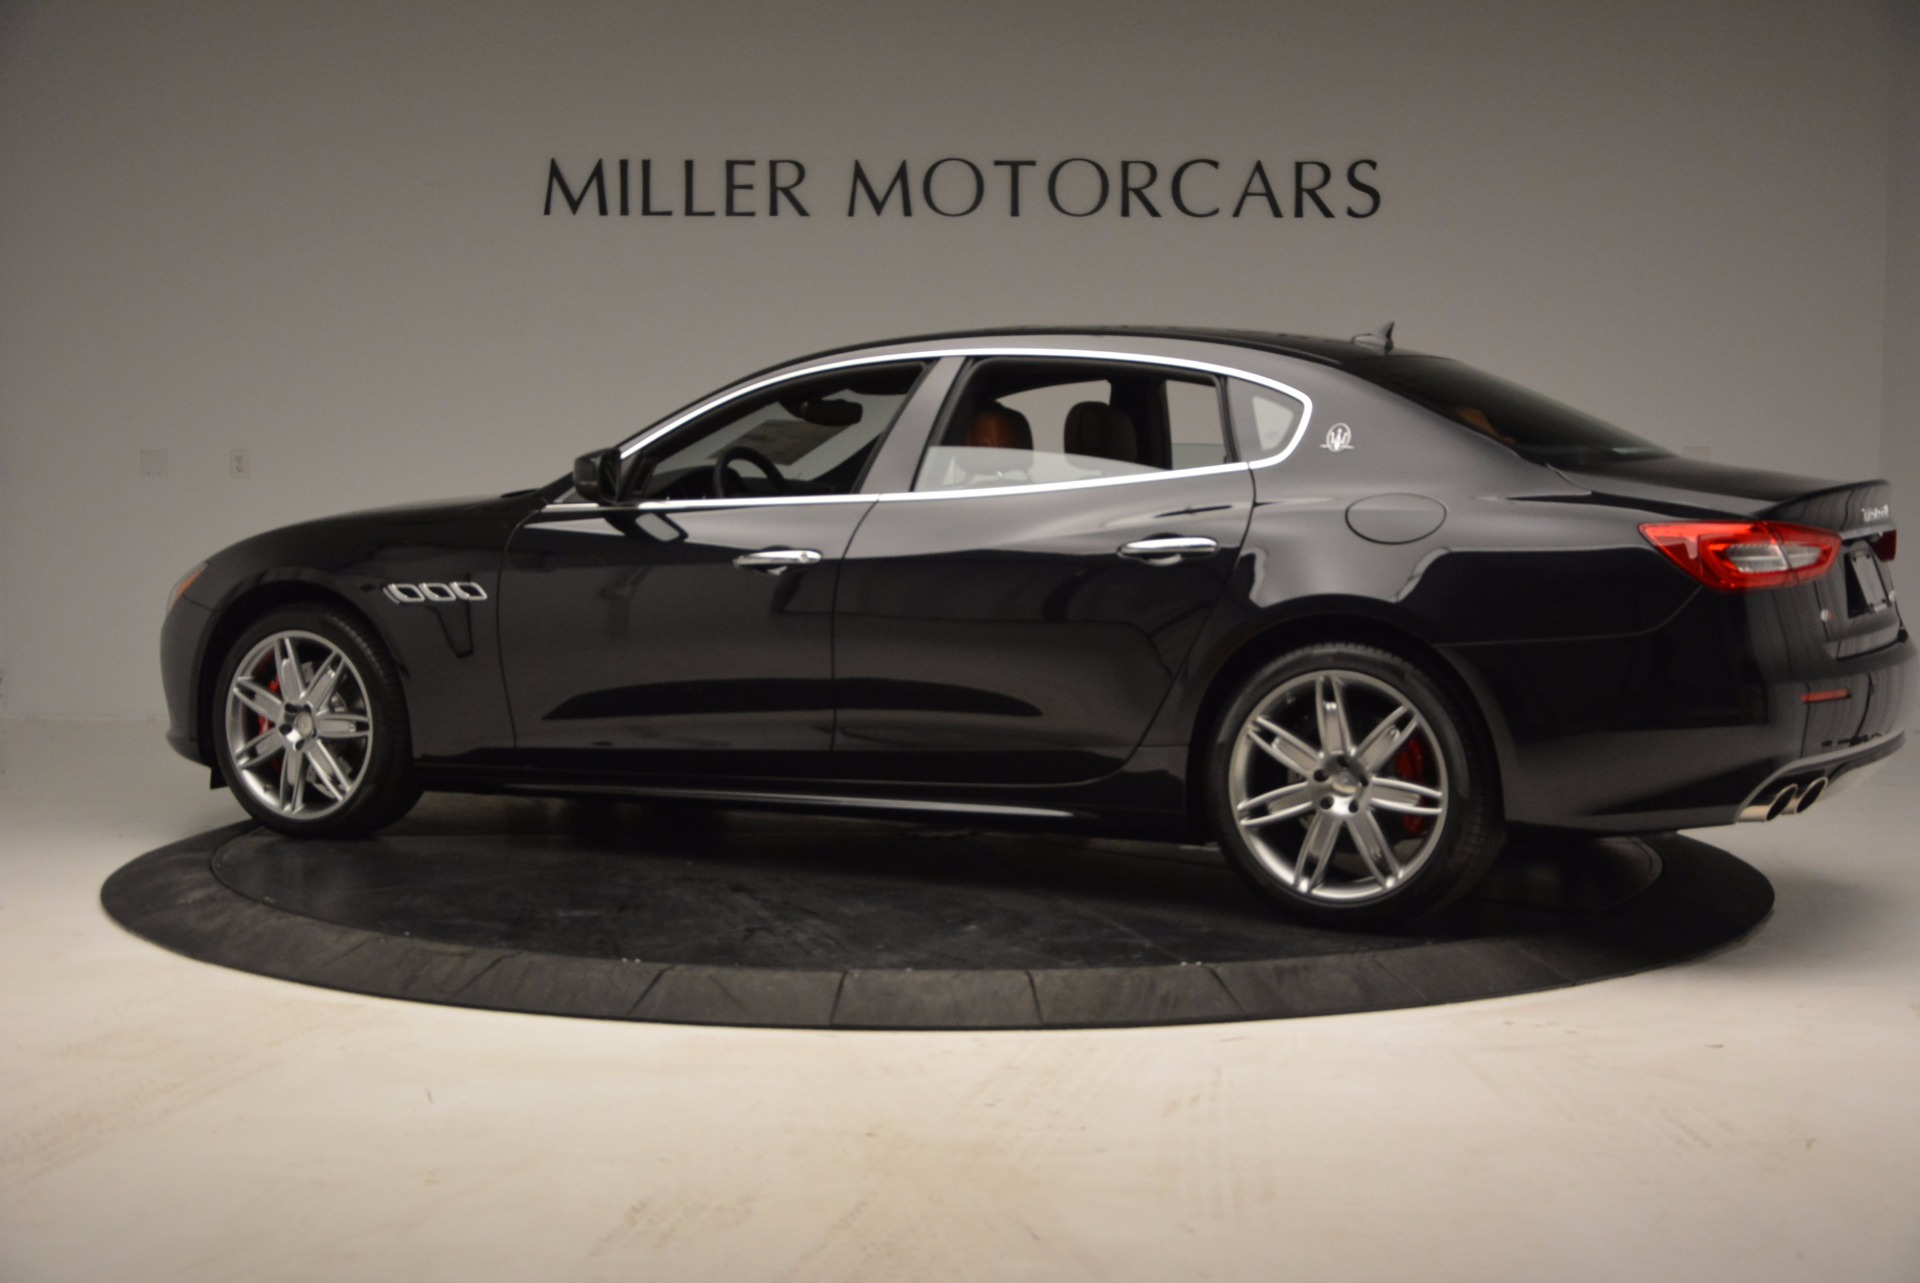 New 2017 Maserati Quattroporte S Q4 GranLusso For Sale In Greenwich, CT 716_p4